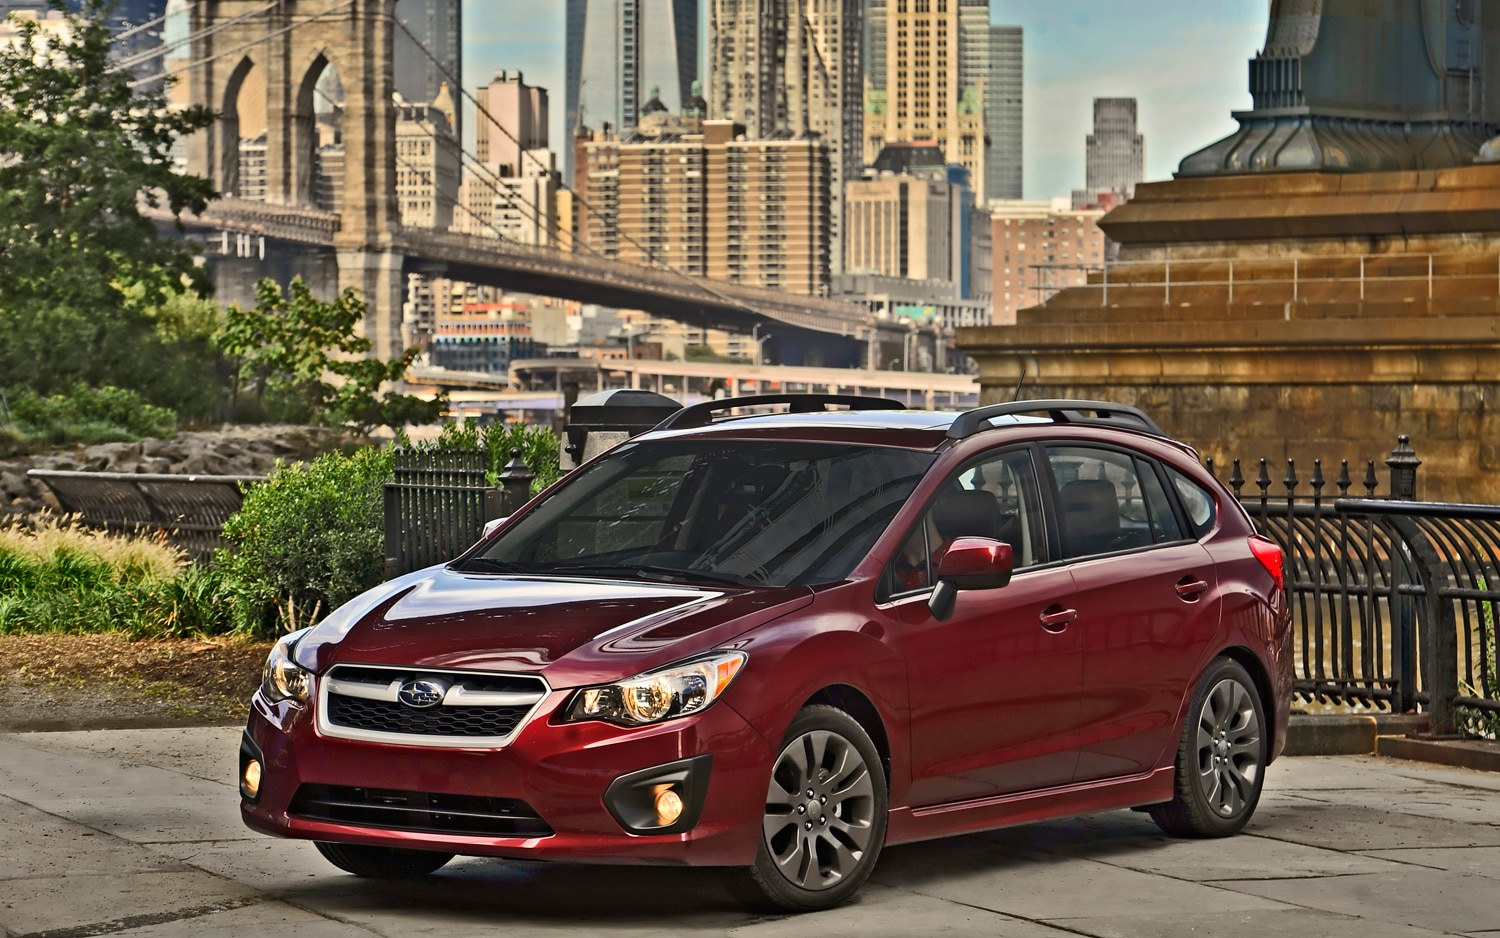 2012 Subaru Impreza Hatchback Front Left Side View1